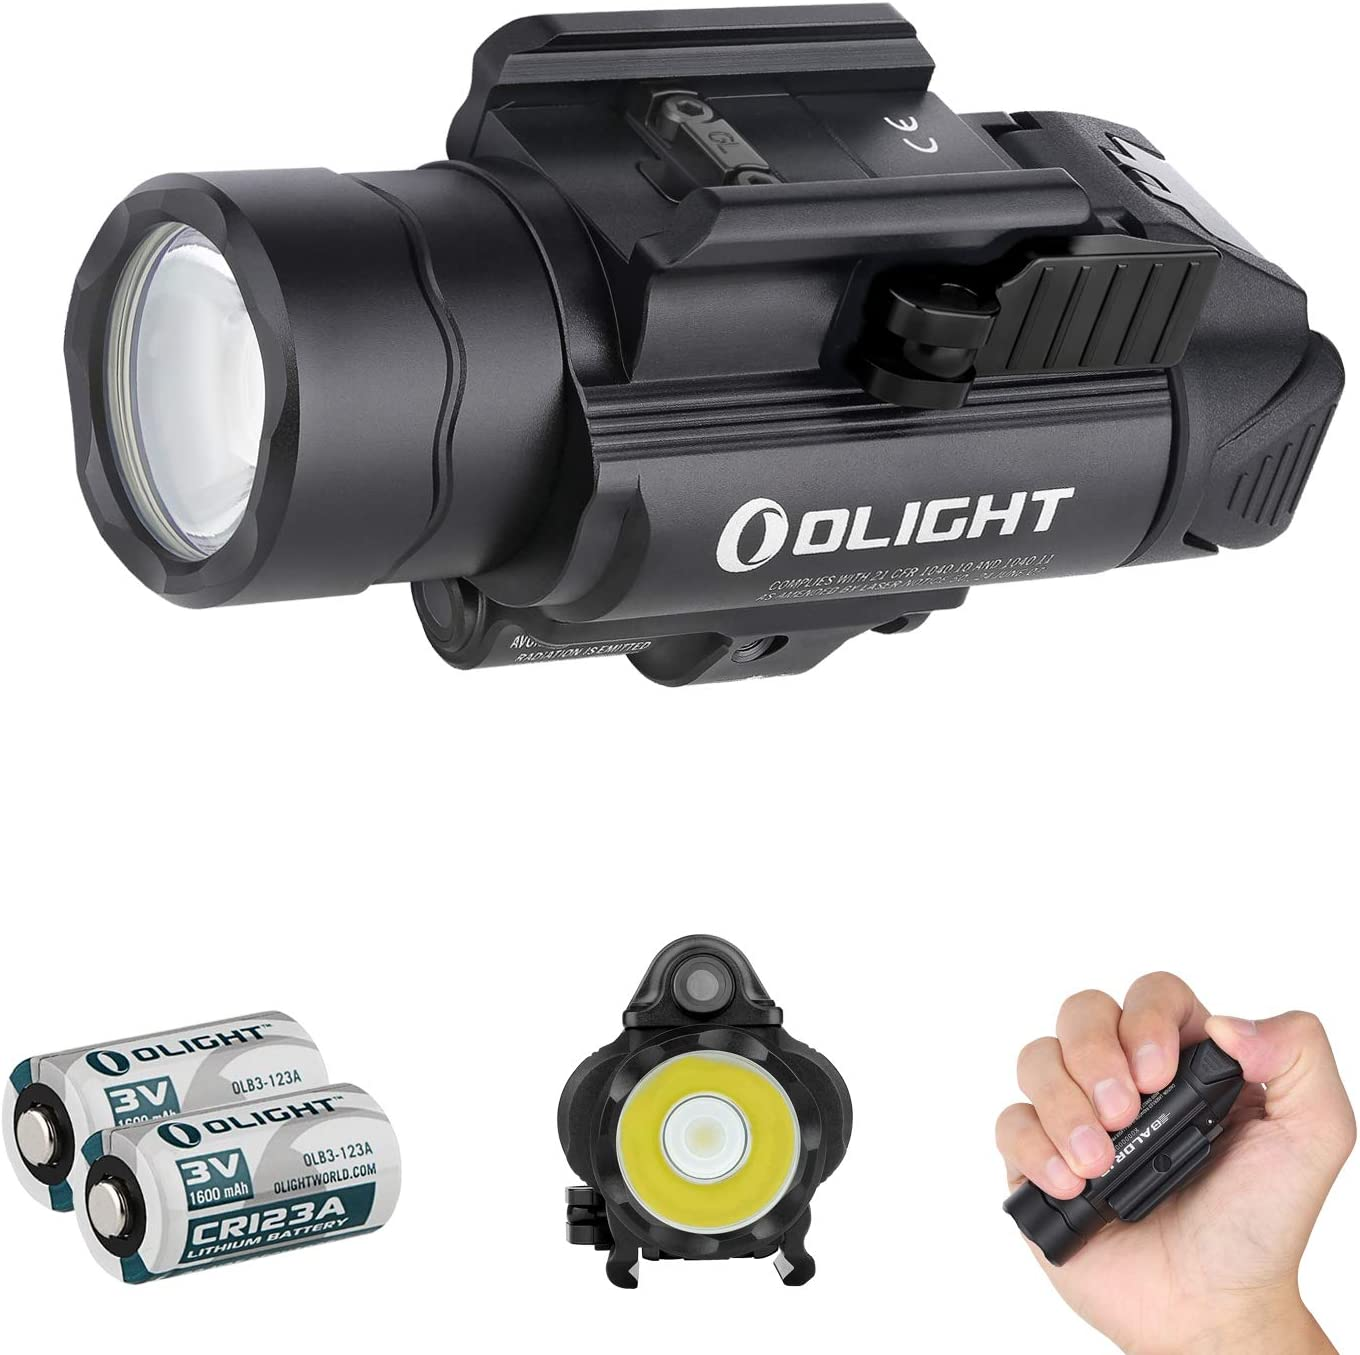 Olight 40% OFF Cheap Sale Baldr IR Ranking TOP4 1350 Lumens Flashlight White Tactical with Light